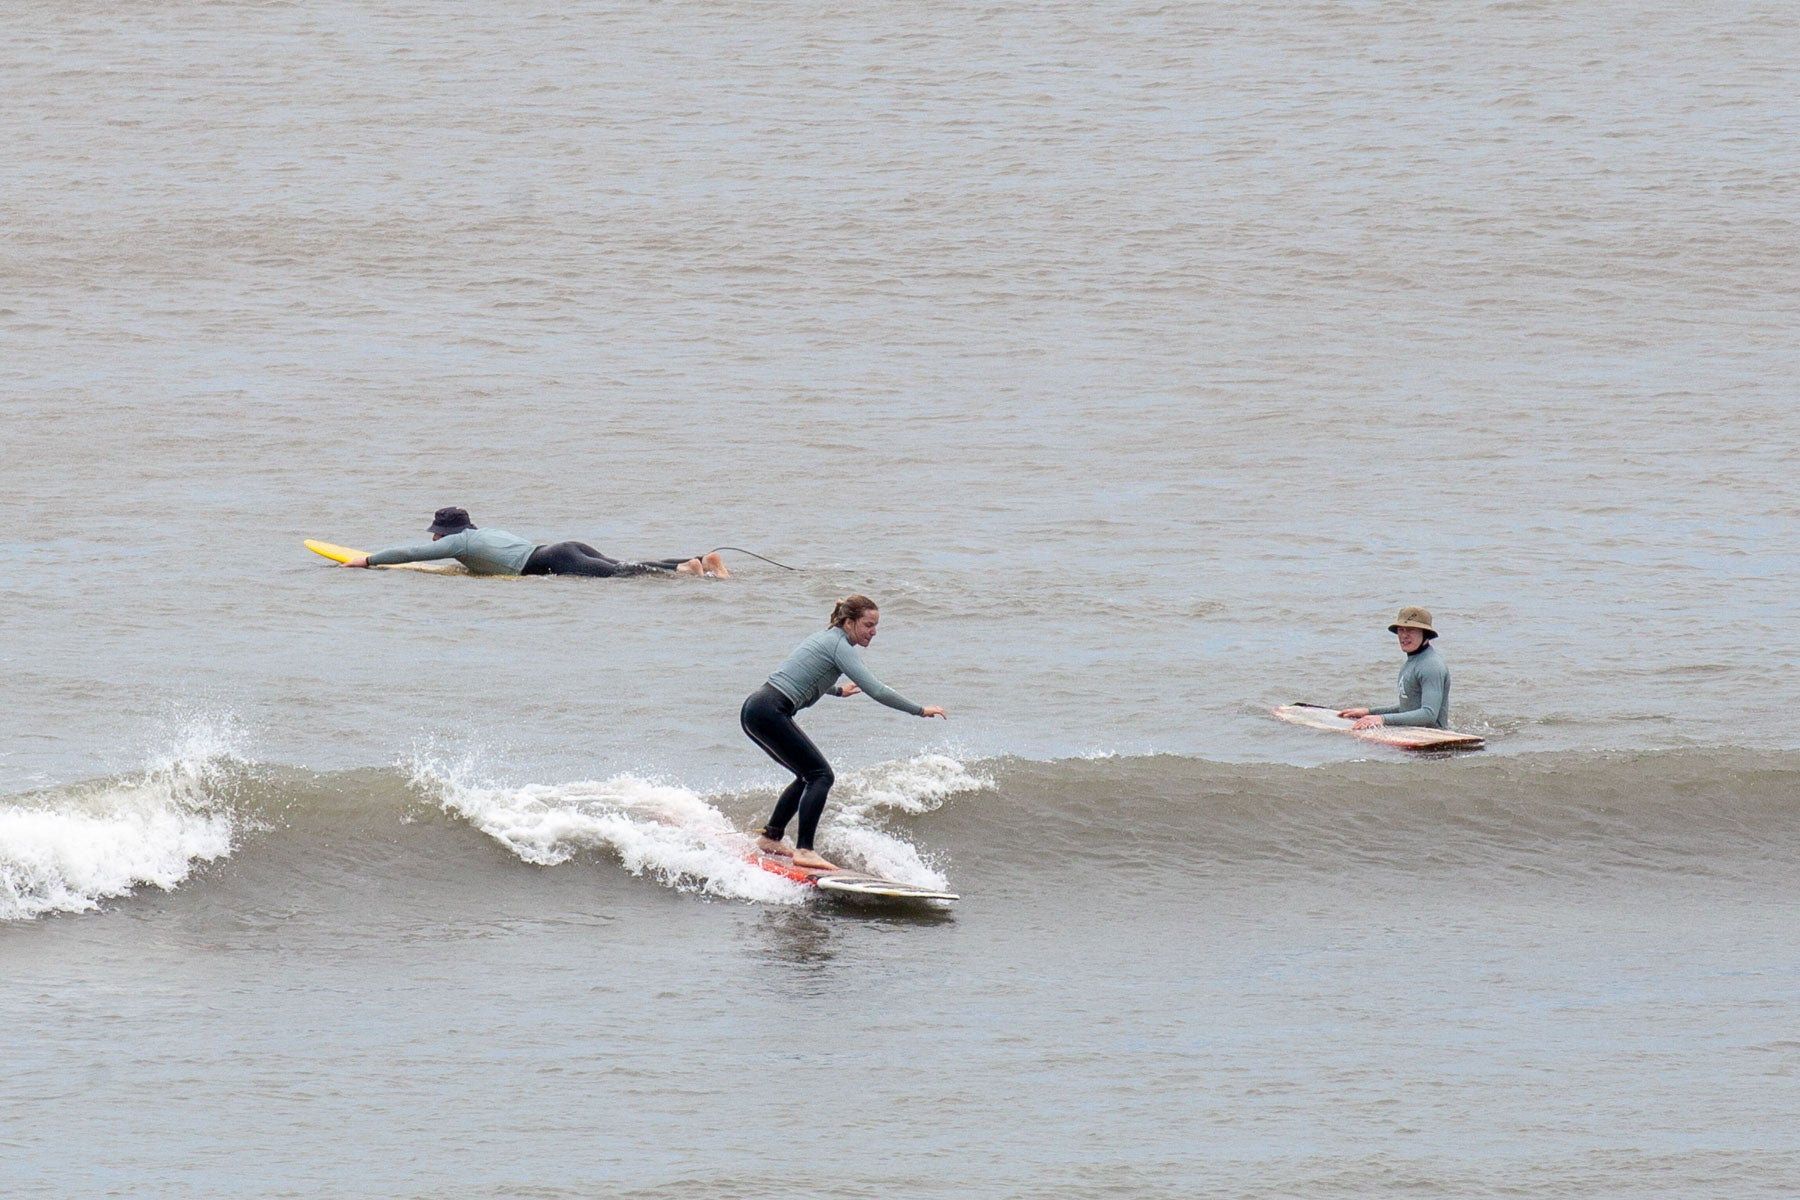 Chicama Boutique Resort Surf the Greats Surf Camp Learn to Surf